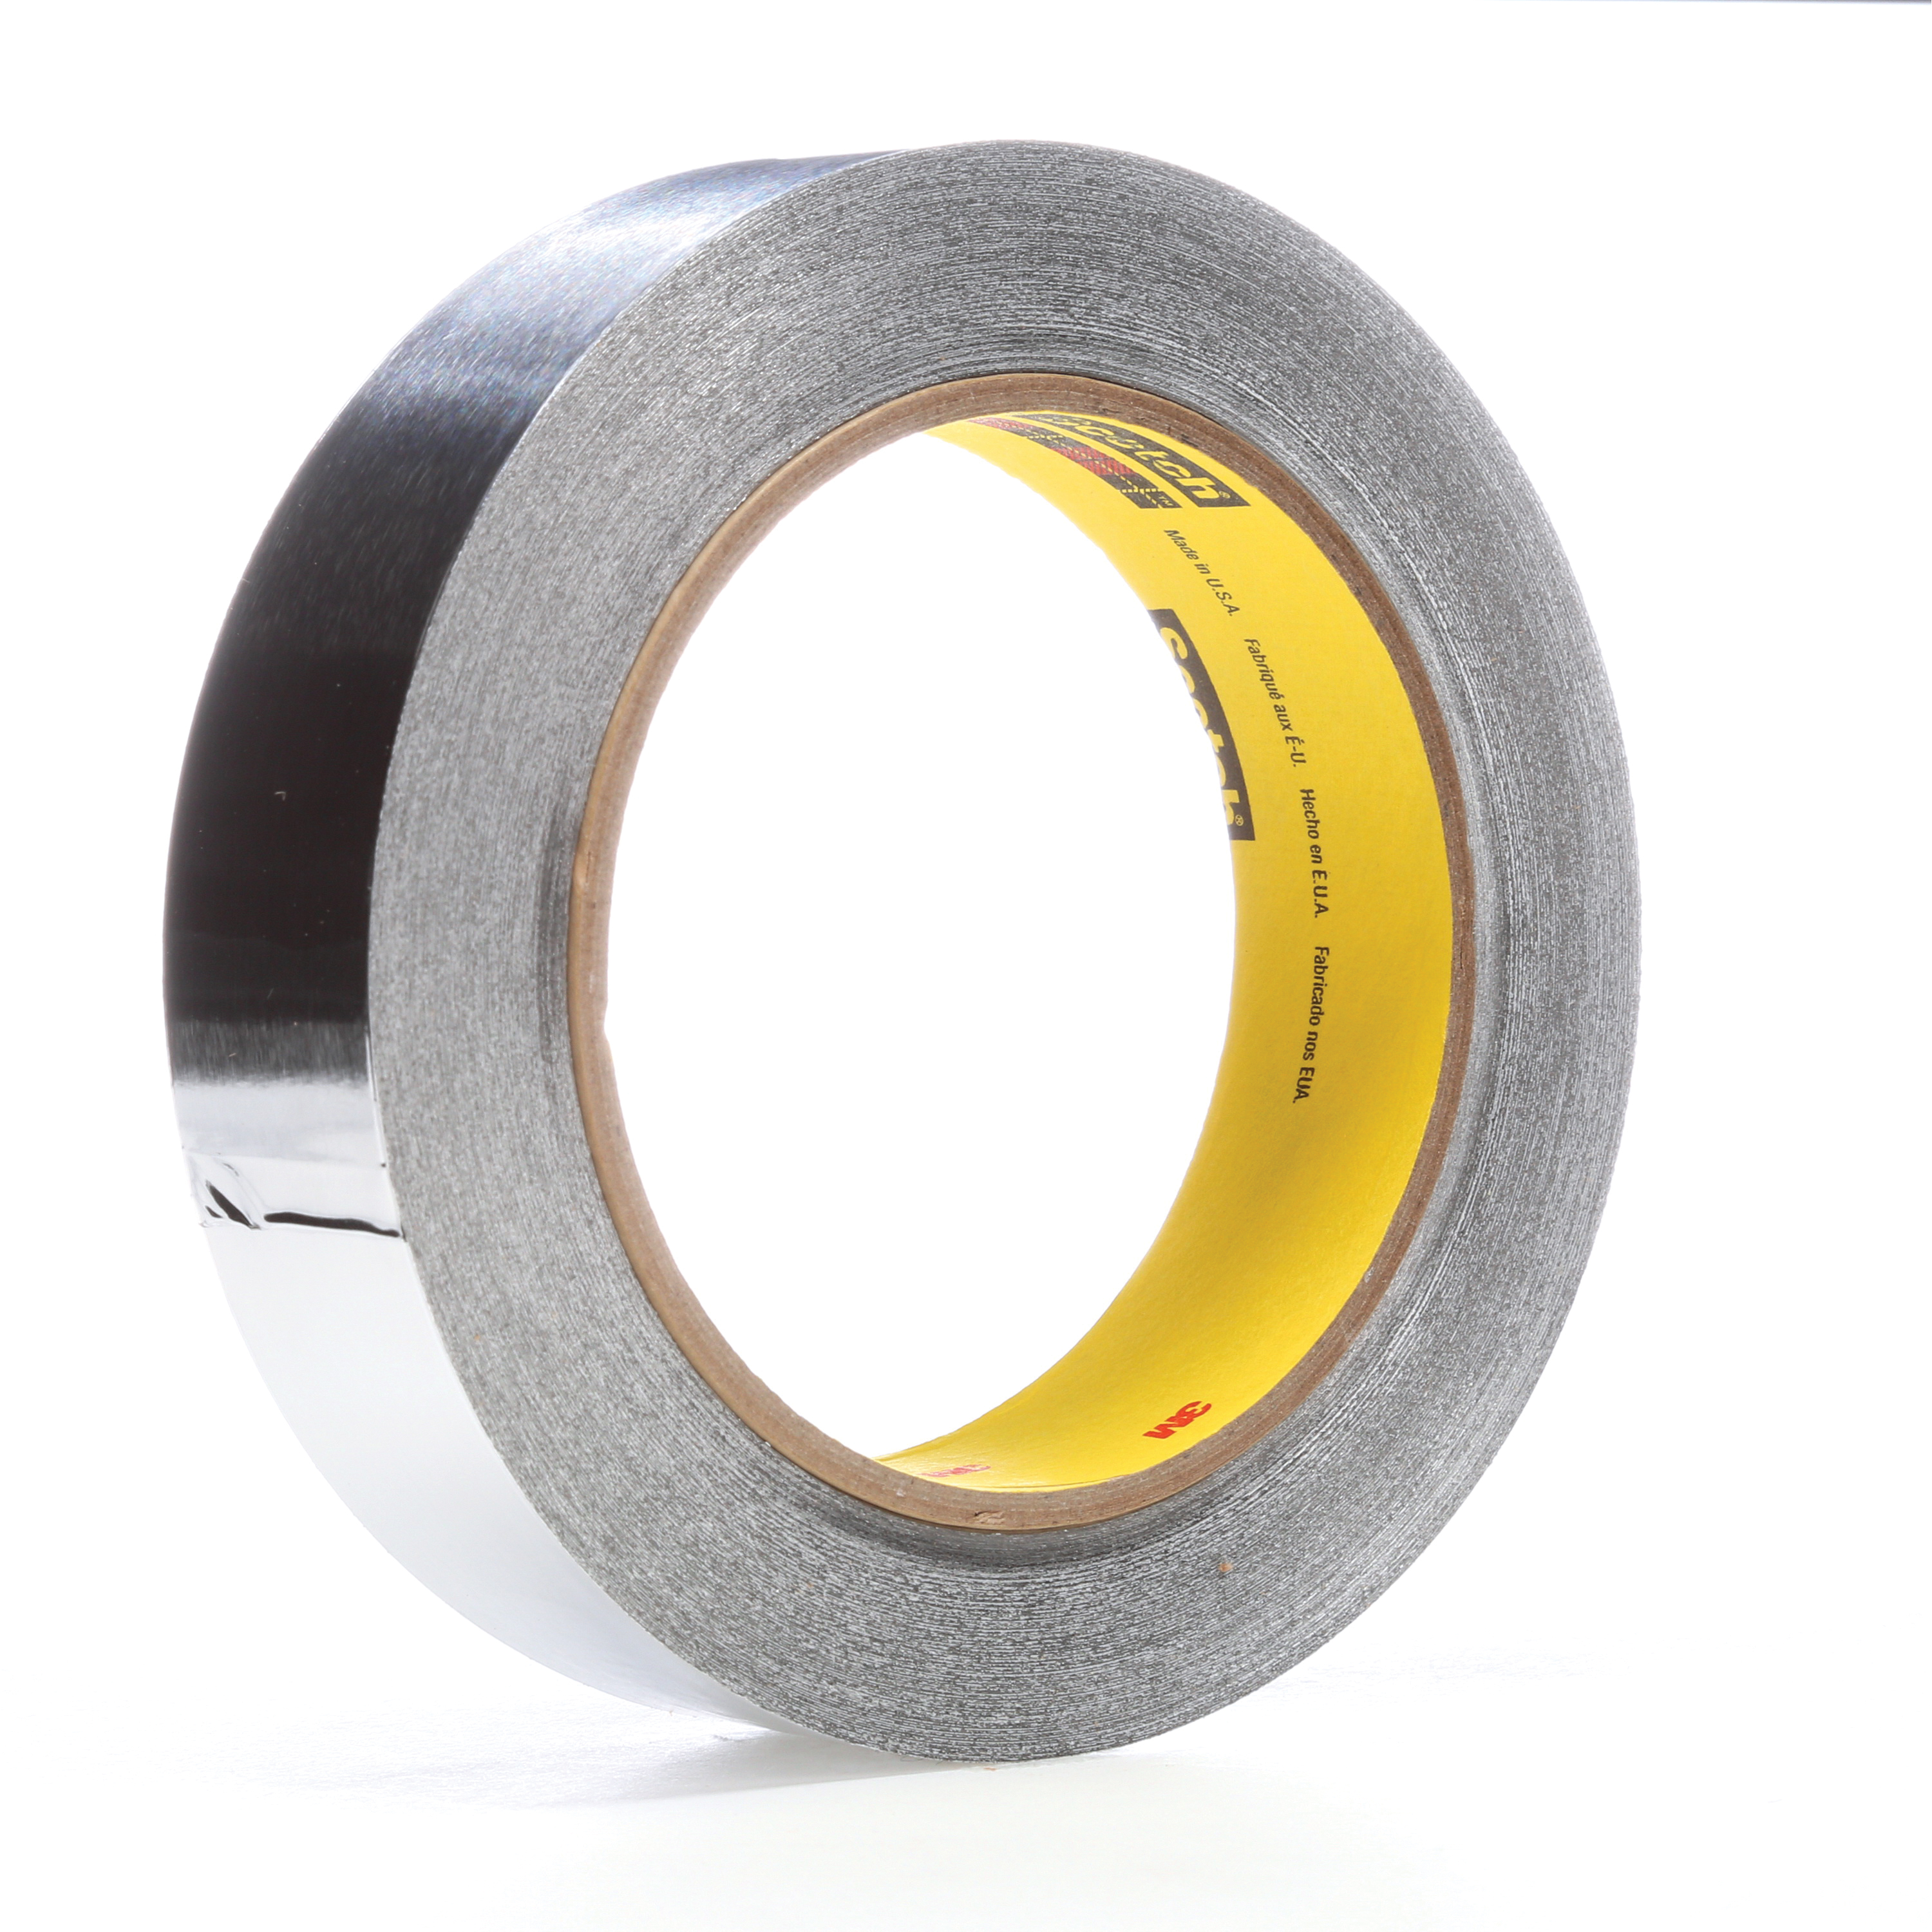 3M™ 021200-05674 Premium Performance Self-Wound Foil Tape, 60 yd L x 1 in W, 3.6 mil THK, Easy Release Film Liner, Silicon Adhesive, Aluminum Foil Backing, Silver